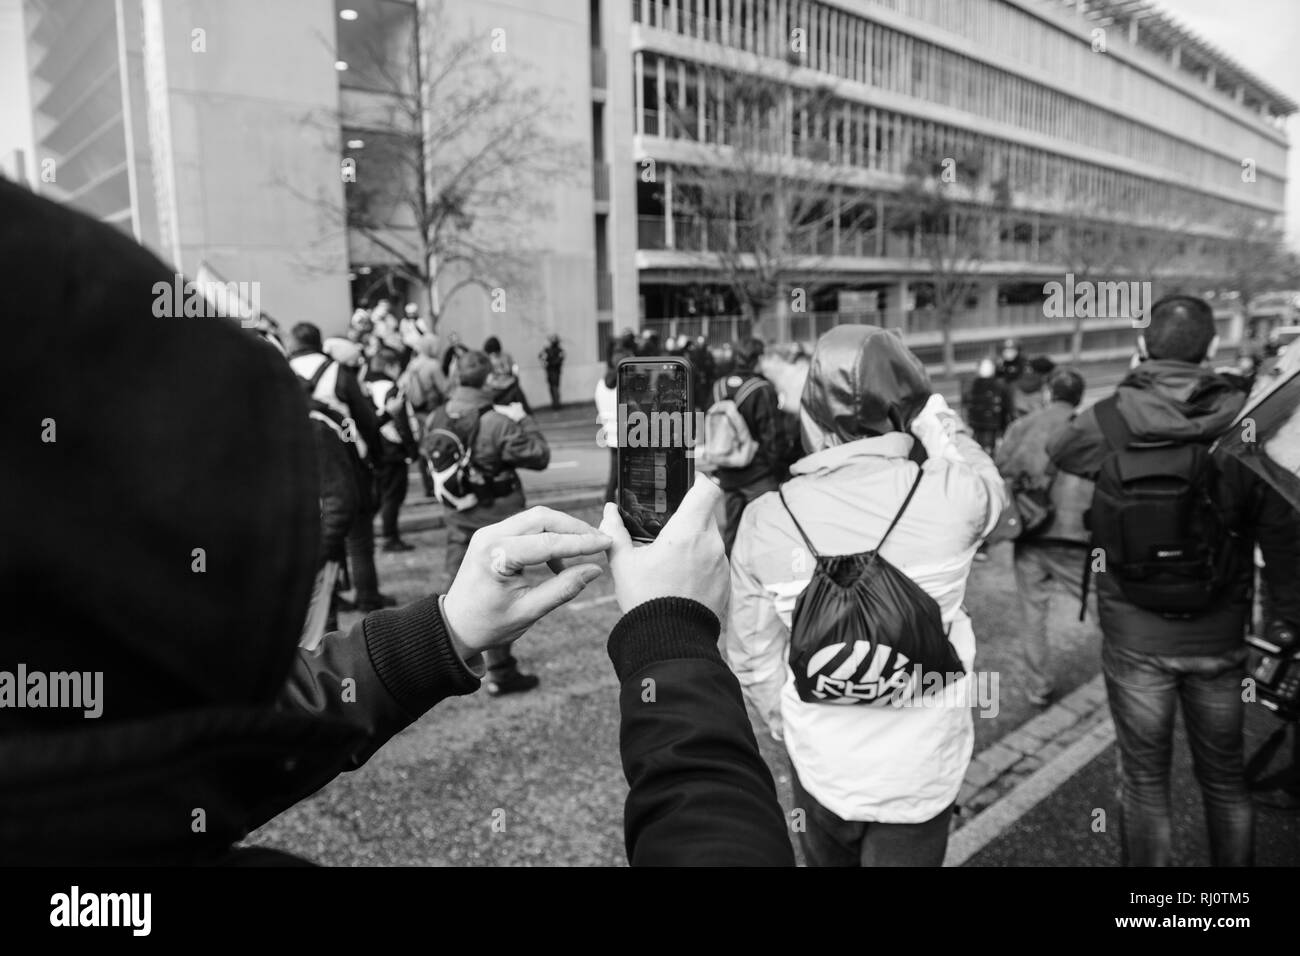 STRASBOURG, FRANCE - FEB 02, 2018: Man with mask taking footage of protesters and Police forces during protest of Gilets Jaunes Yellow Vest anti-government demonstrations - Stock Image